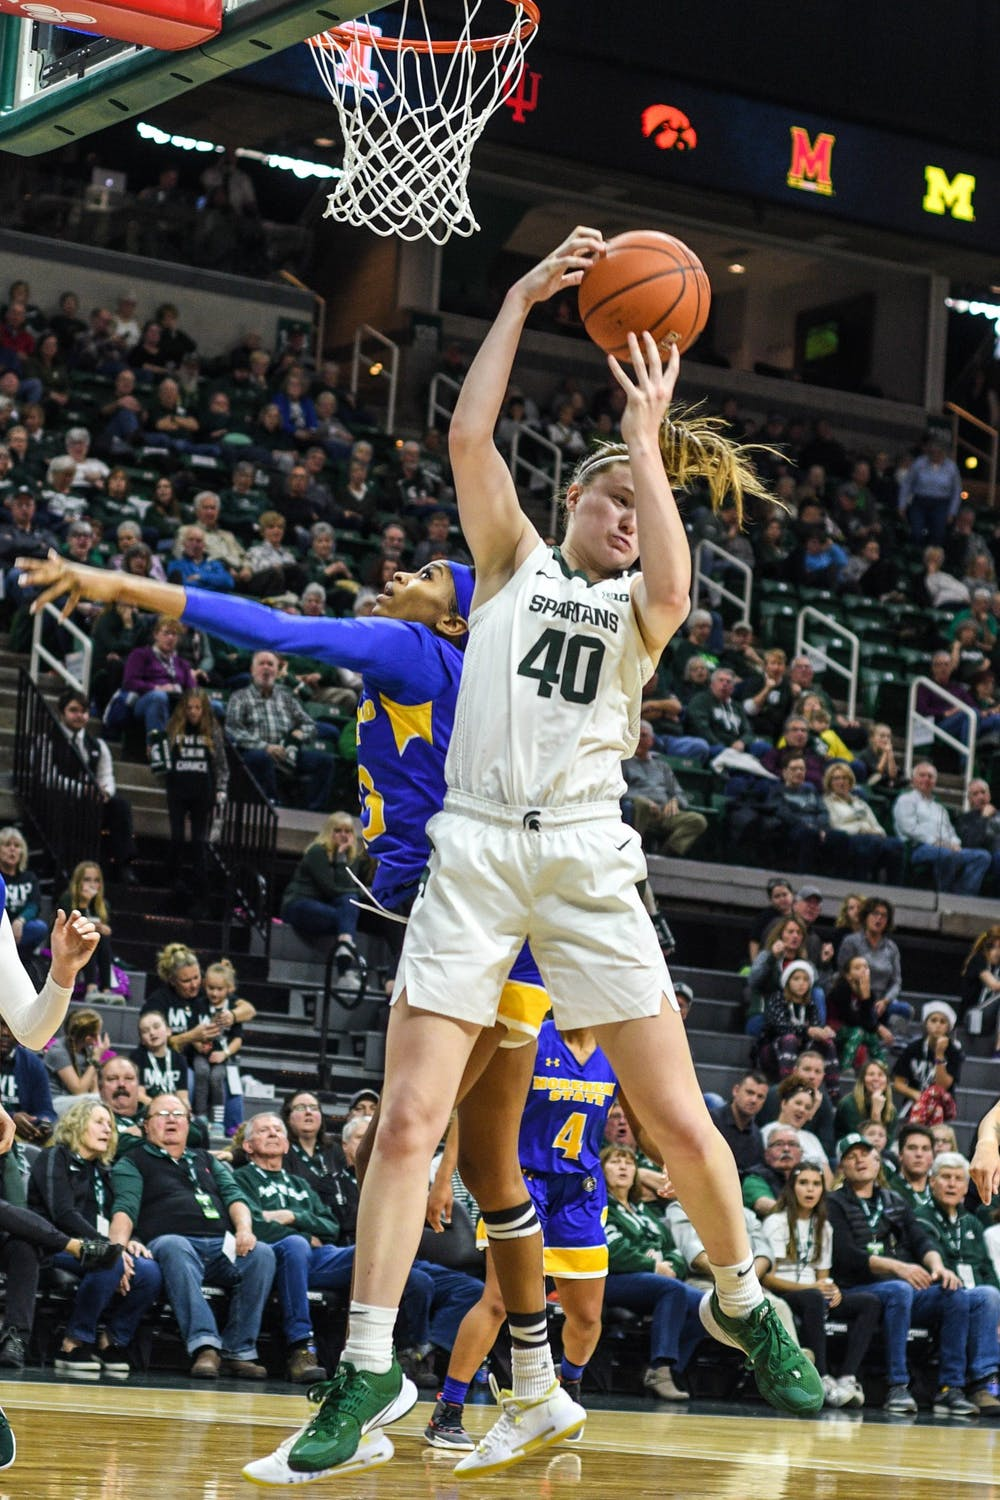 <p>Freshman guard Julia Ayrault (40) shoots the ball during the game against Morehead State on Dec. 15, 2019 at Breslin Center. The Spartans defeated the Eagles, 93-48.</p>